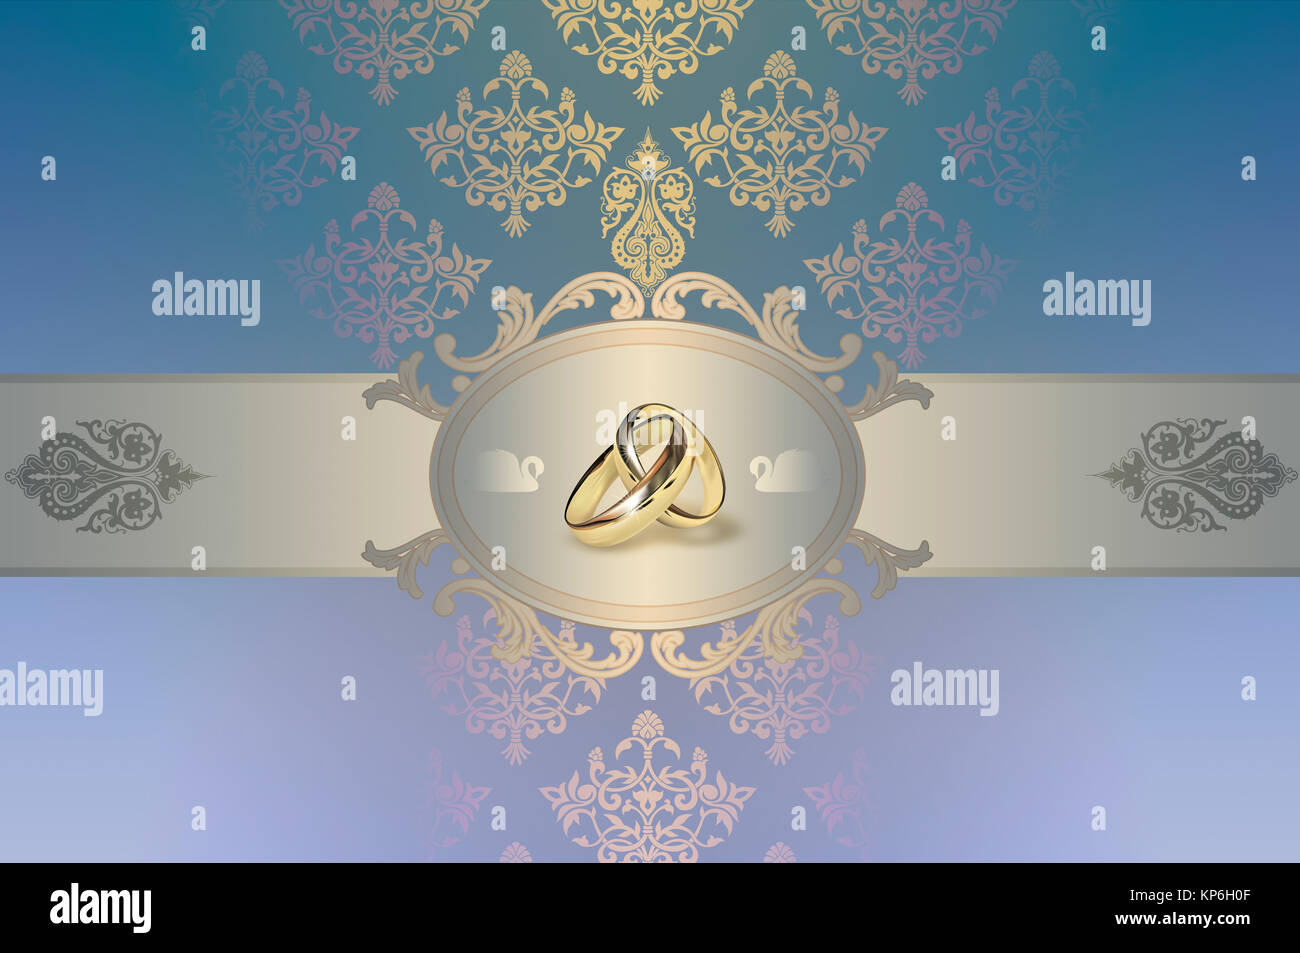 Decorative Background With Gold Rings And Frame For The